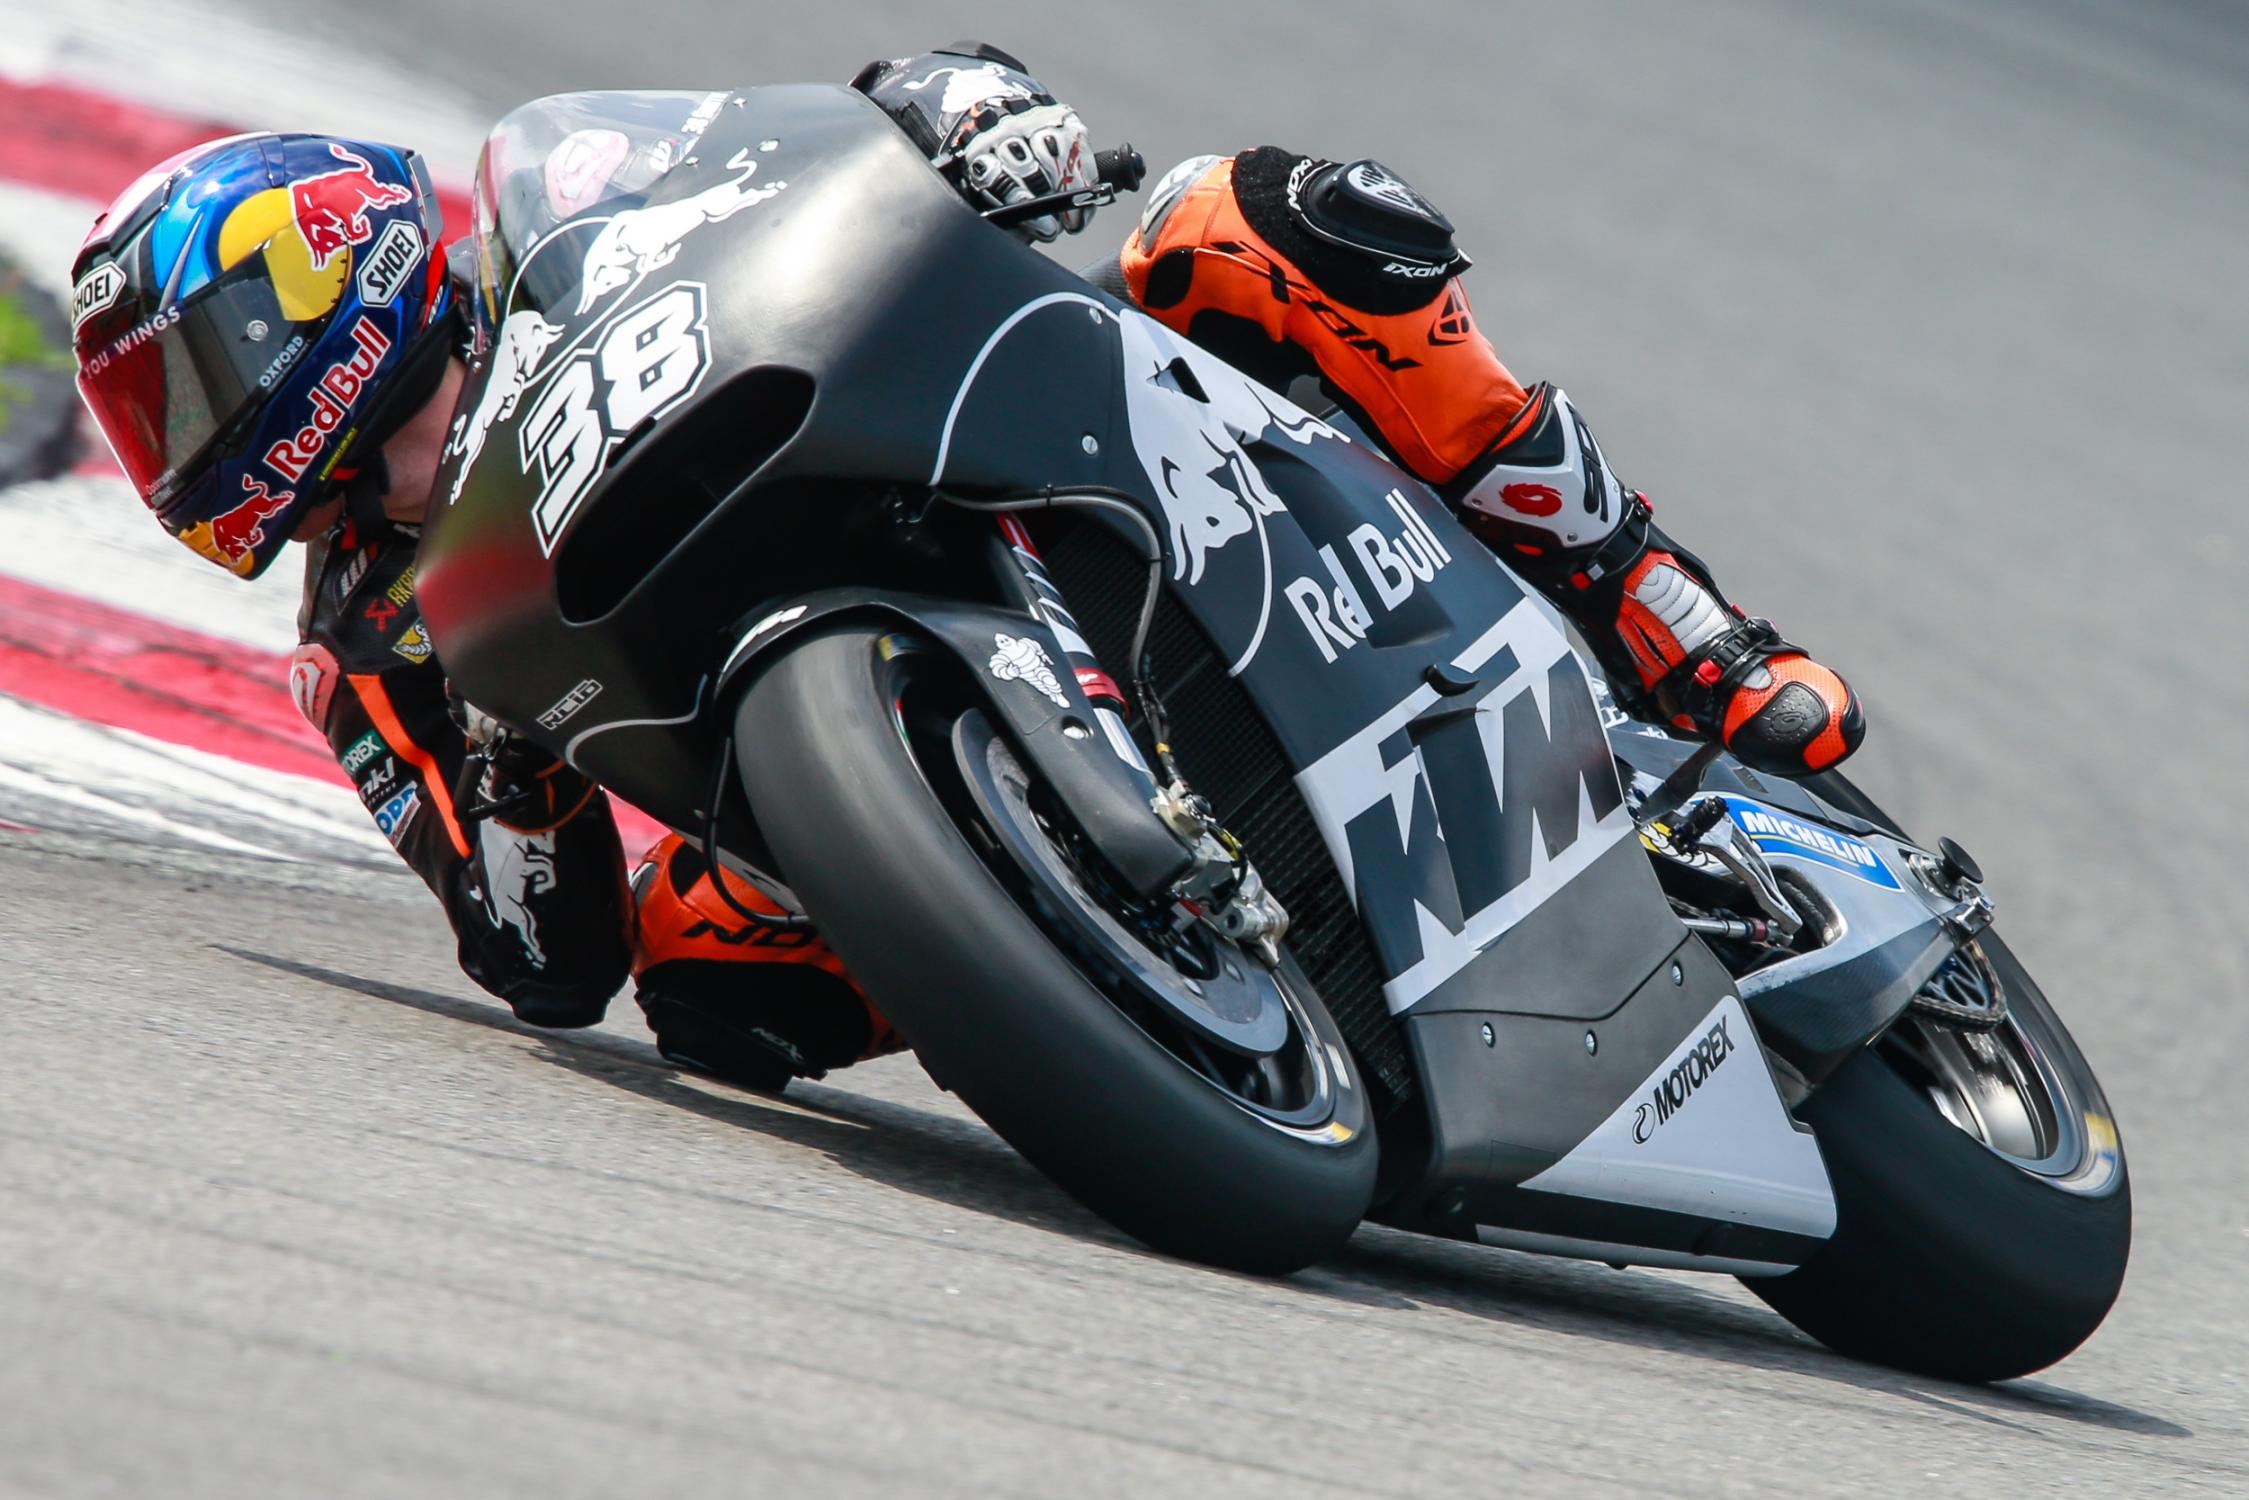 [MotoGP] Test Sepang 38-bradley-smith-eng_gp_7702.gallery_full_top_fullscreen